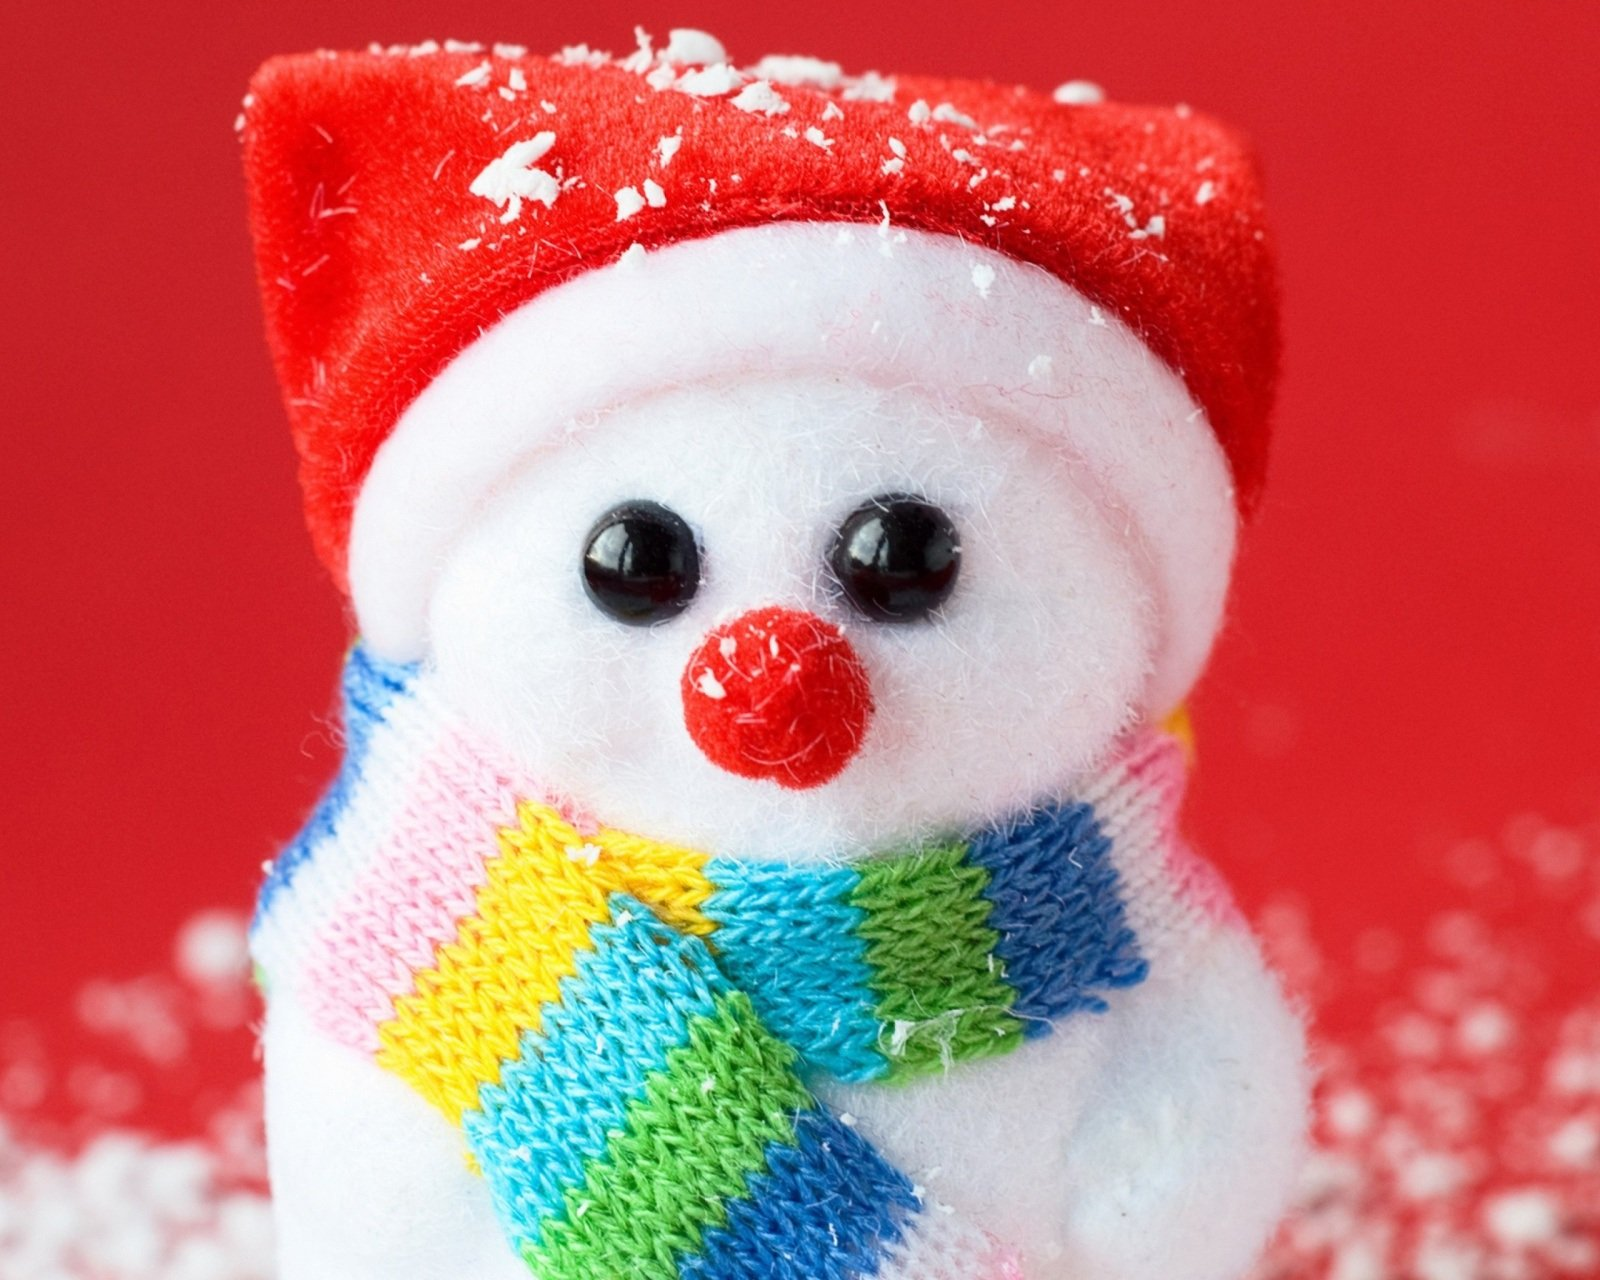 Christmas Snowman 1600x1280 wallpaper1600X1280 wallpaper screensaver 1600x1280